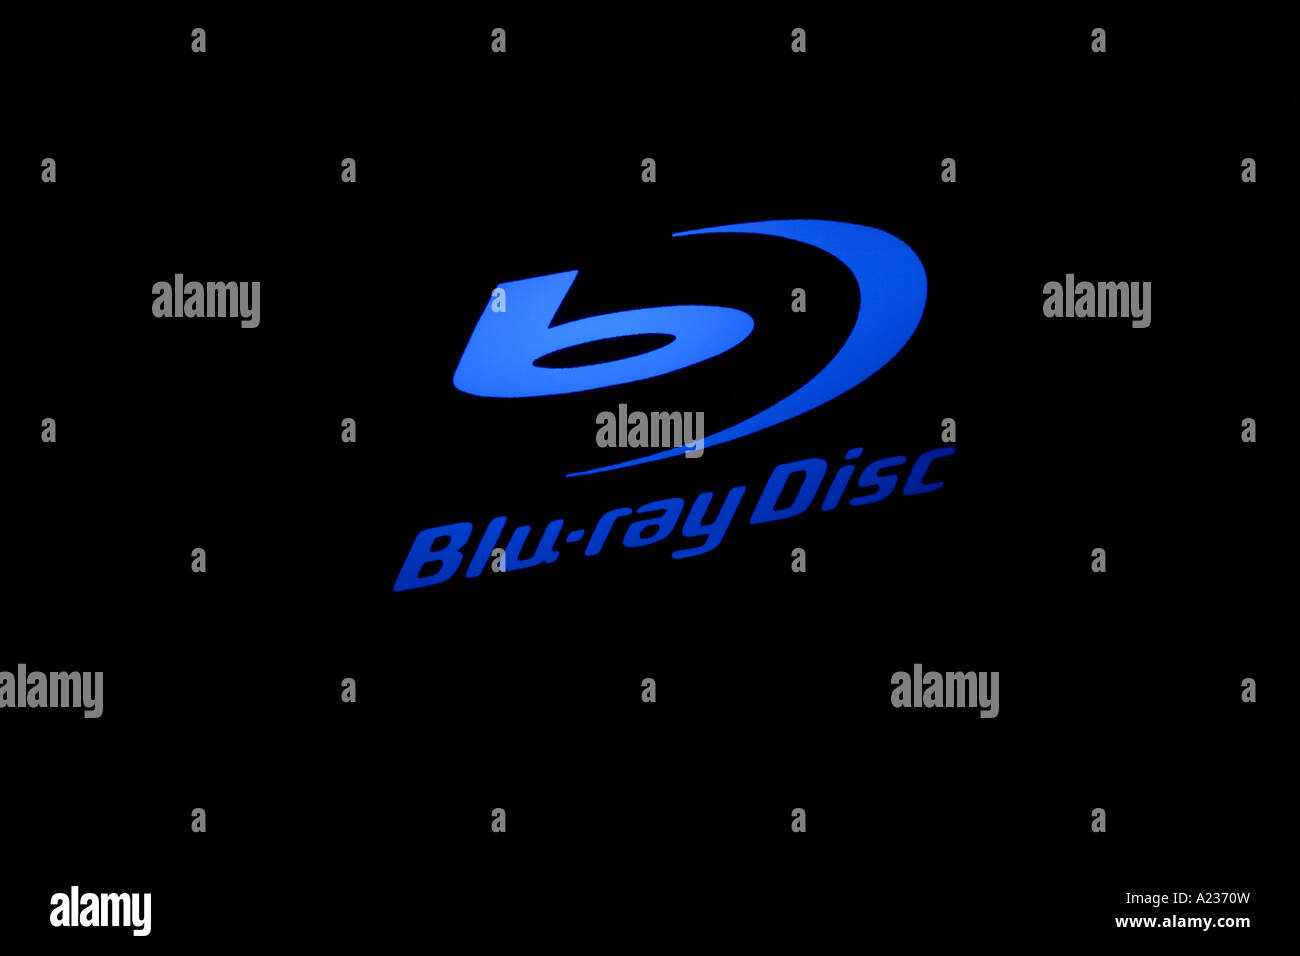 Blu Ray logo in blue Taken from a Blu ray DVD player - Stock Image